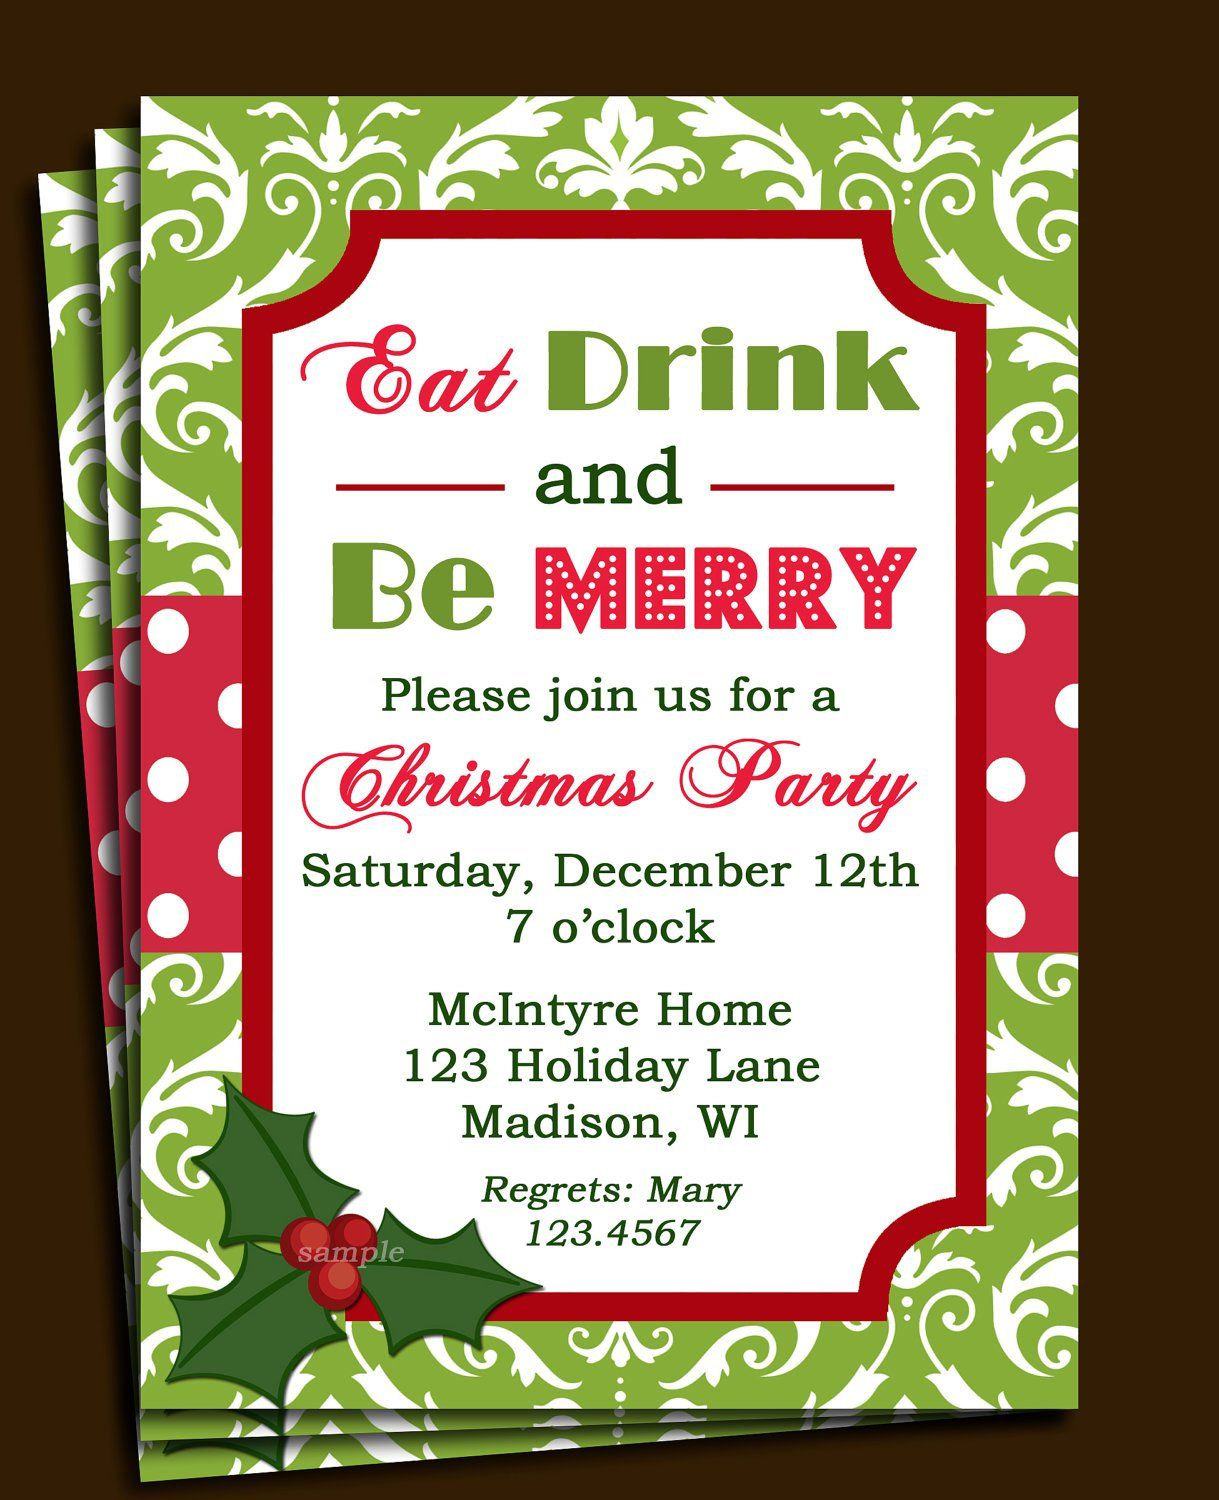 Invitation Letter Sample With Rsvp Christmas party